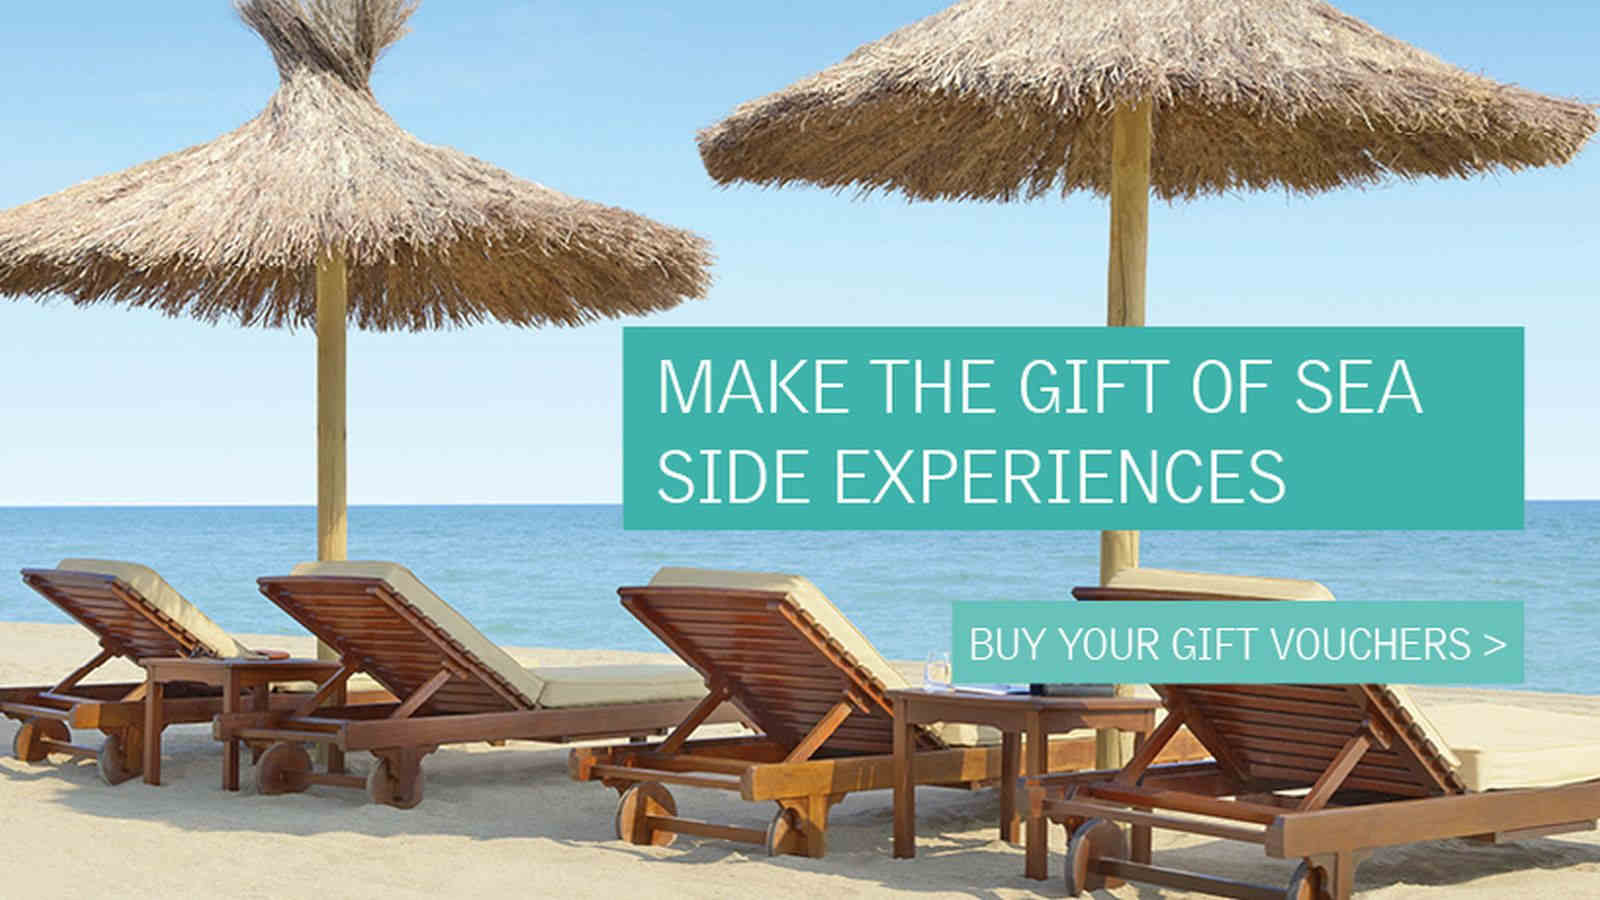 Hotel gift certificates at Le Méridien Ra Beach Hotel & Spa